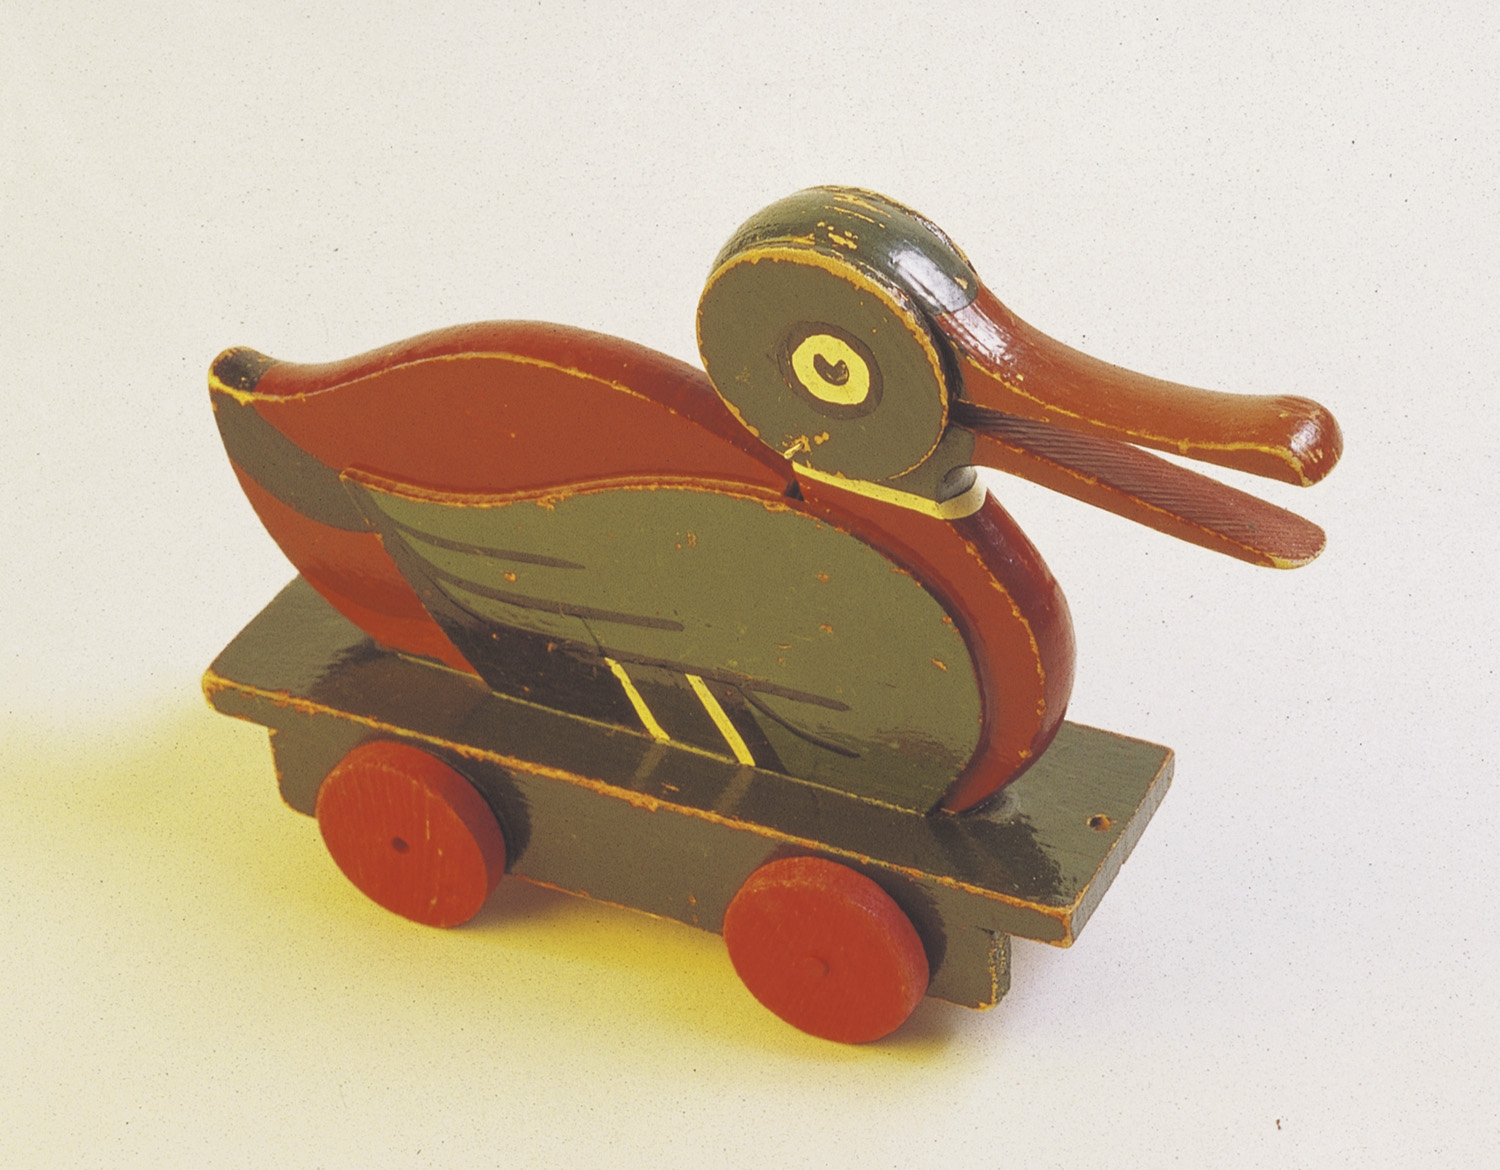 Wooden Toys Toys For Joys : Lego the toys a carpenter made so that his children would